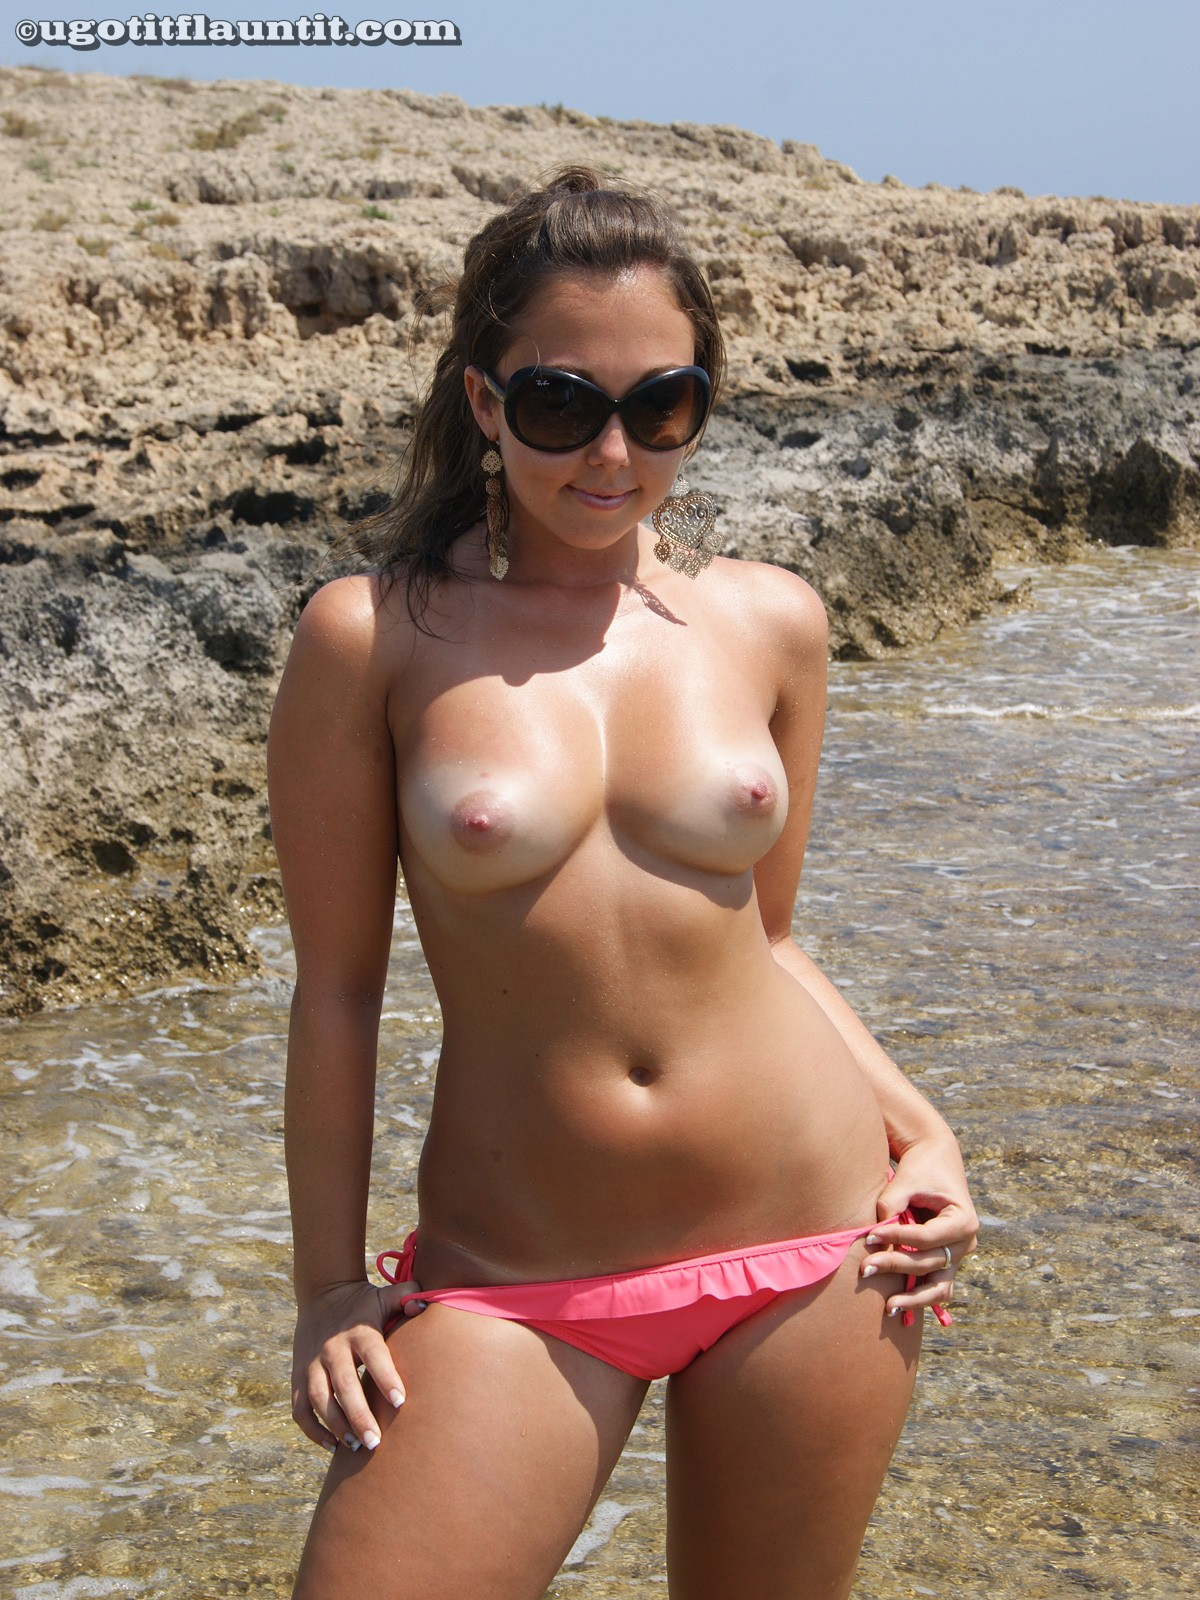 Very pity sexiest topless bikini girls here not